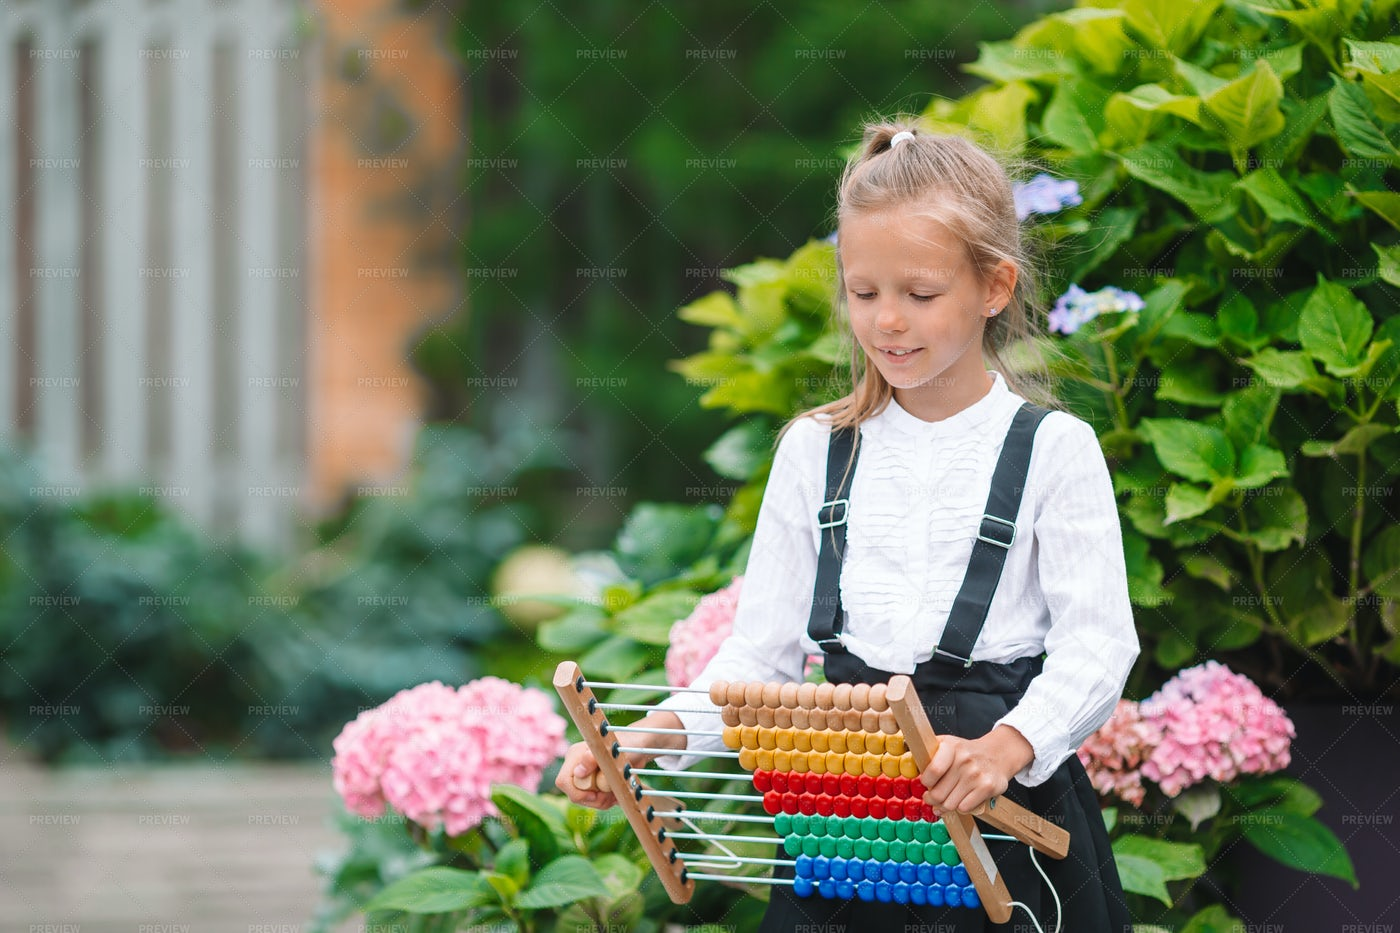 Student With An Abacus: Stock Photos